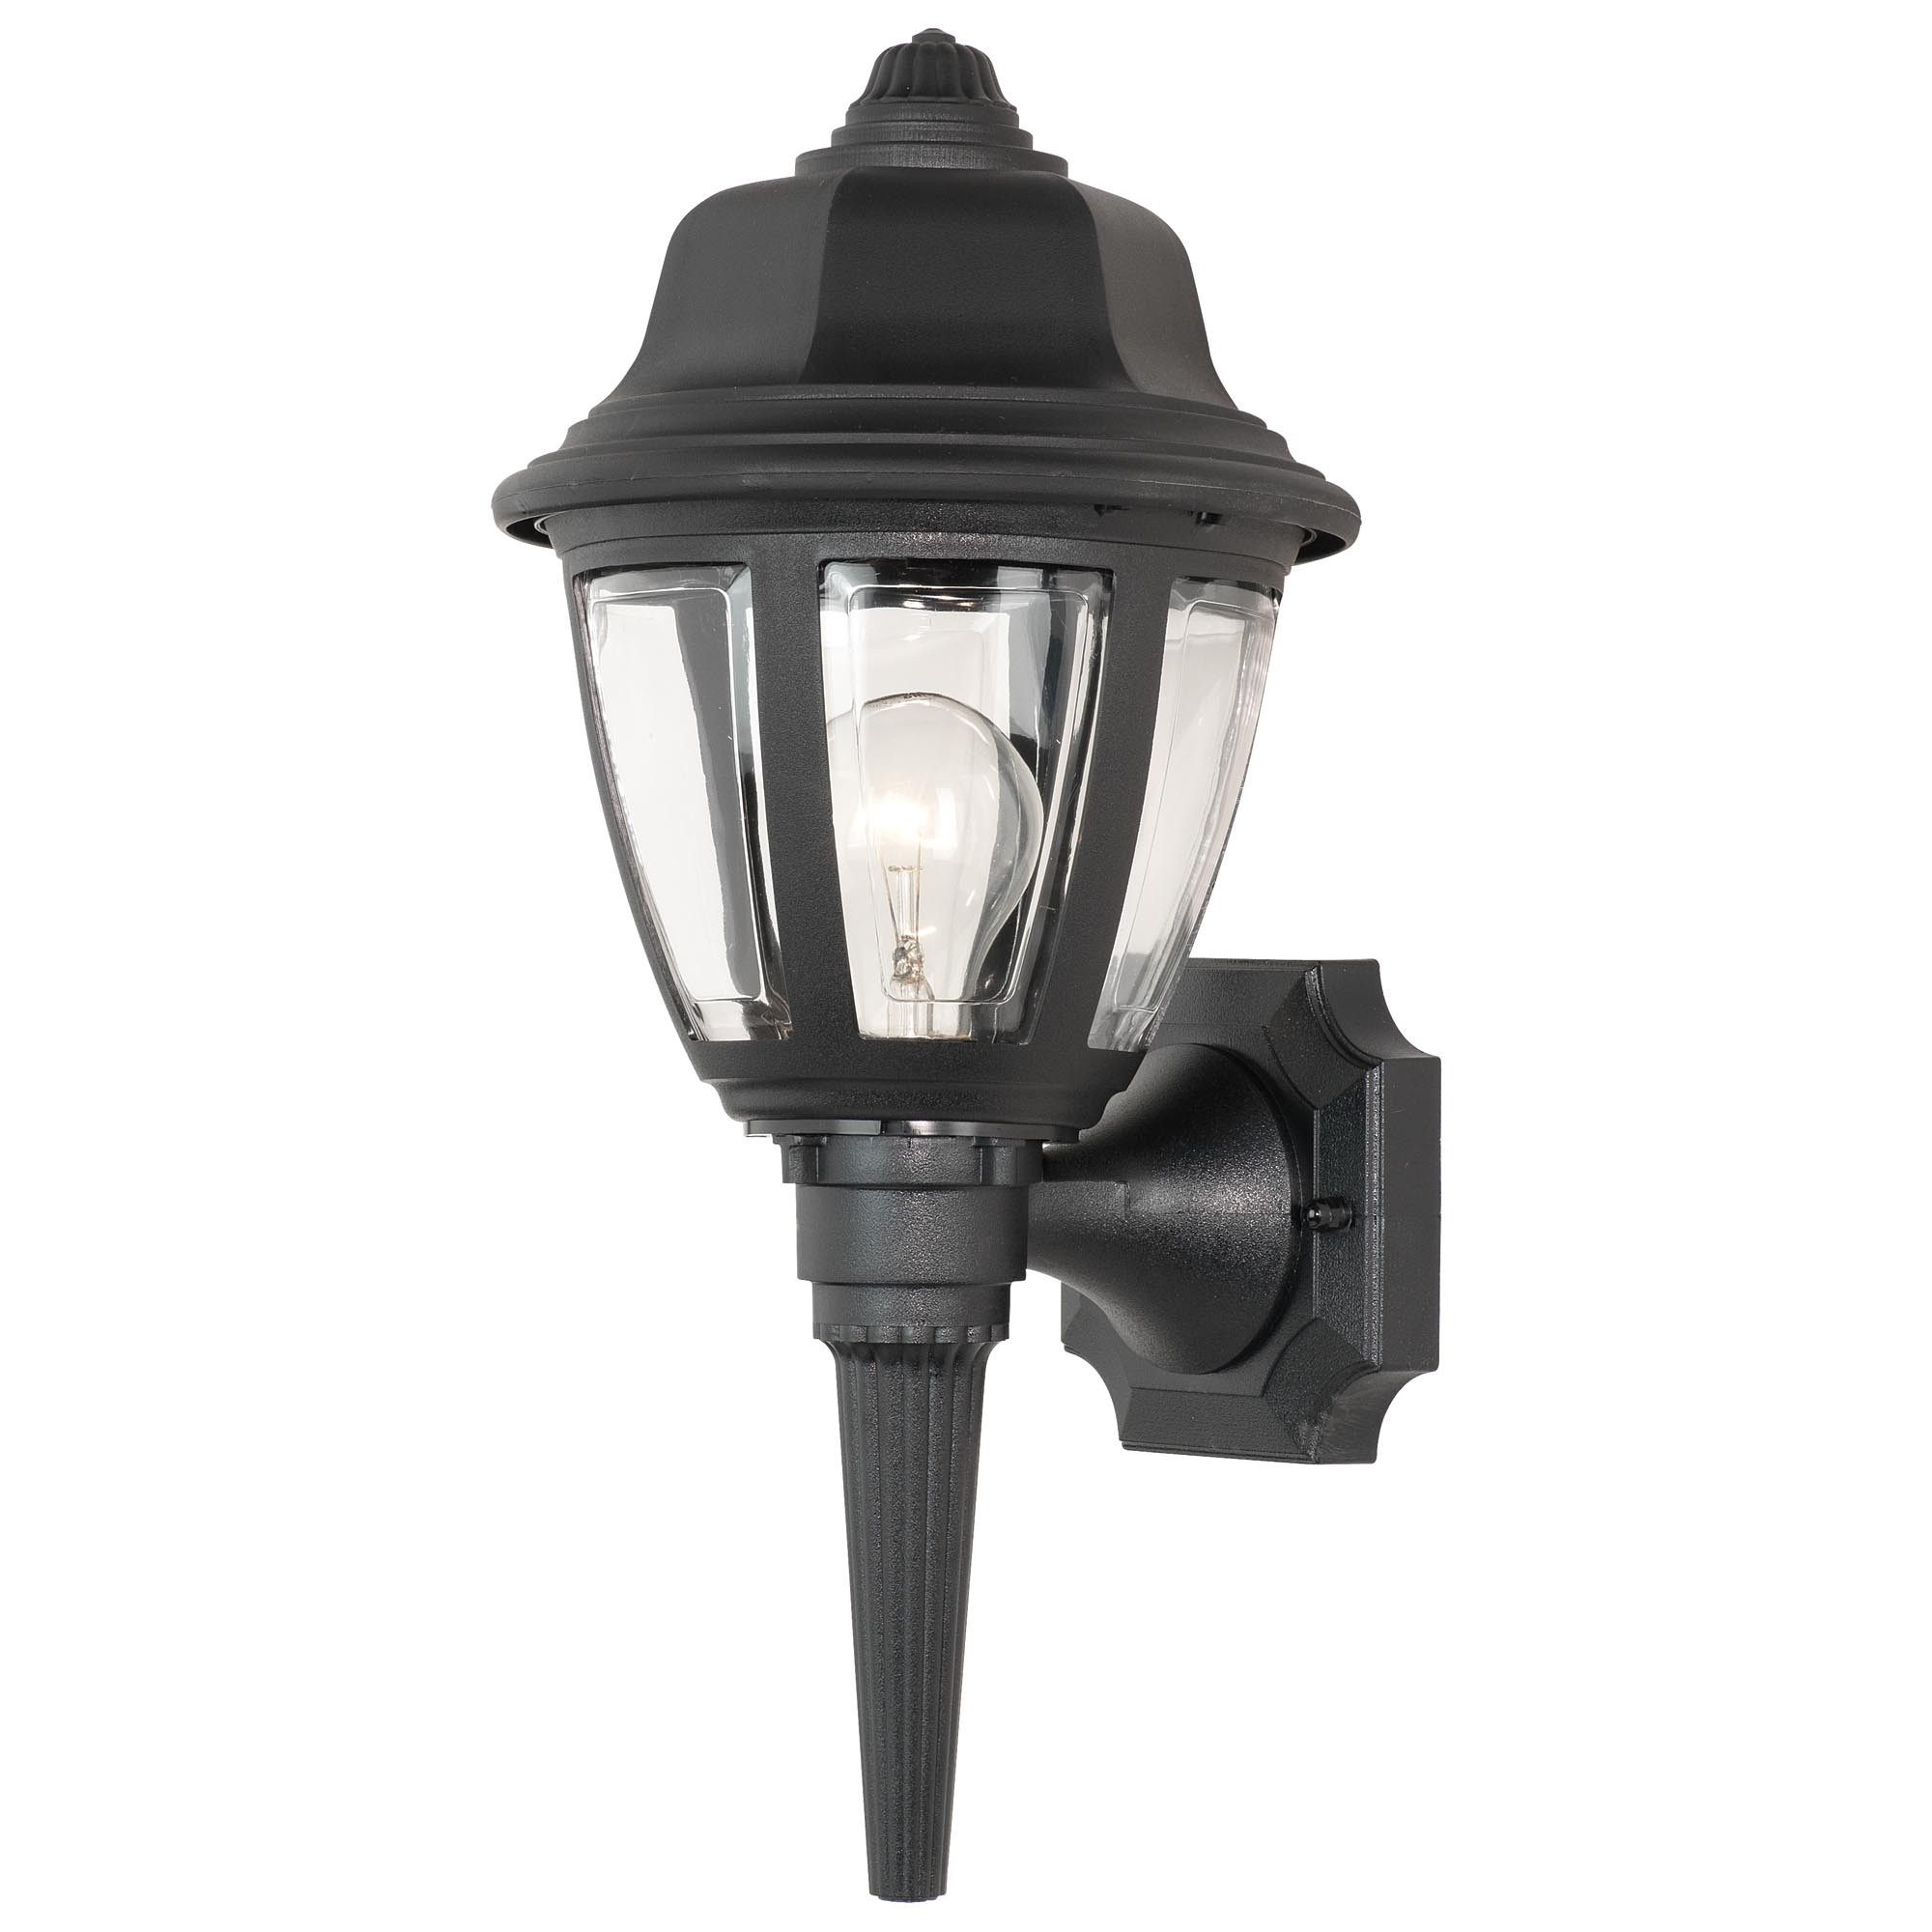 Preferred Plastic Lanterns Outdoor Lights Light Splendid Black Wall Lantern With Regard To Outdoor Plastic Lanterns (View 19 of 20)